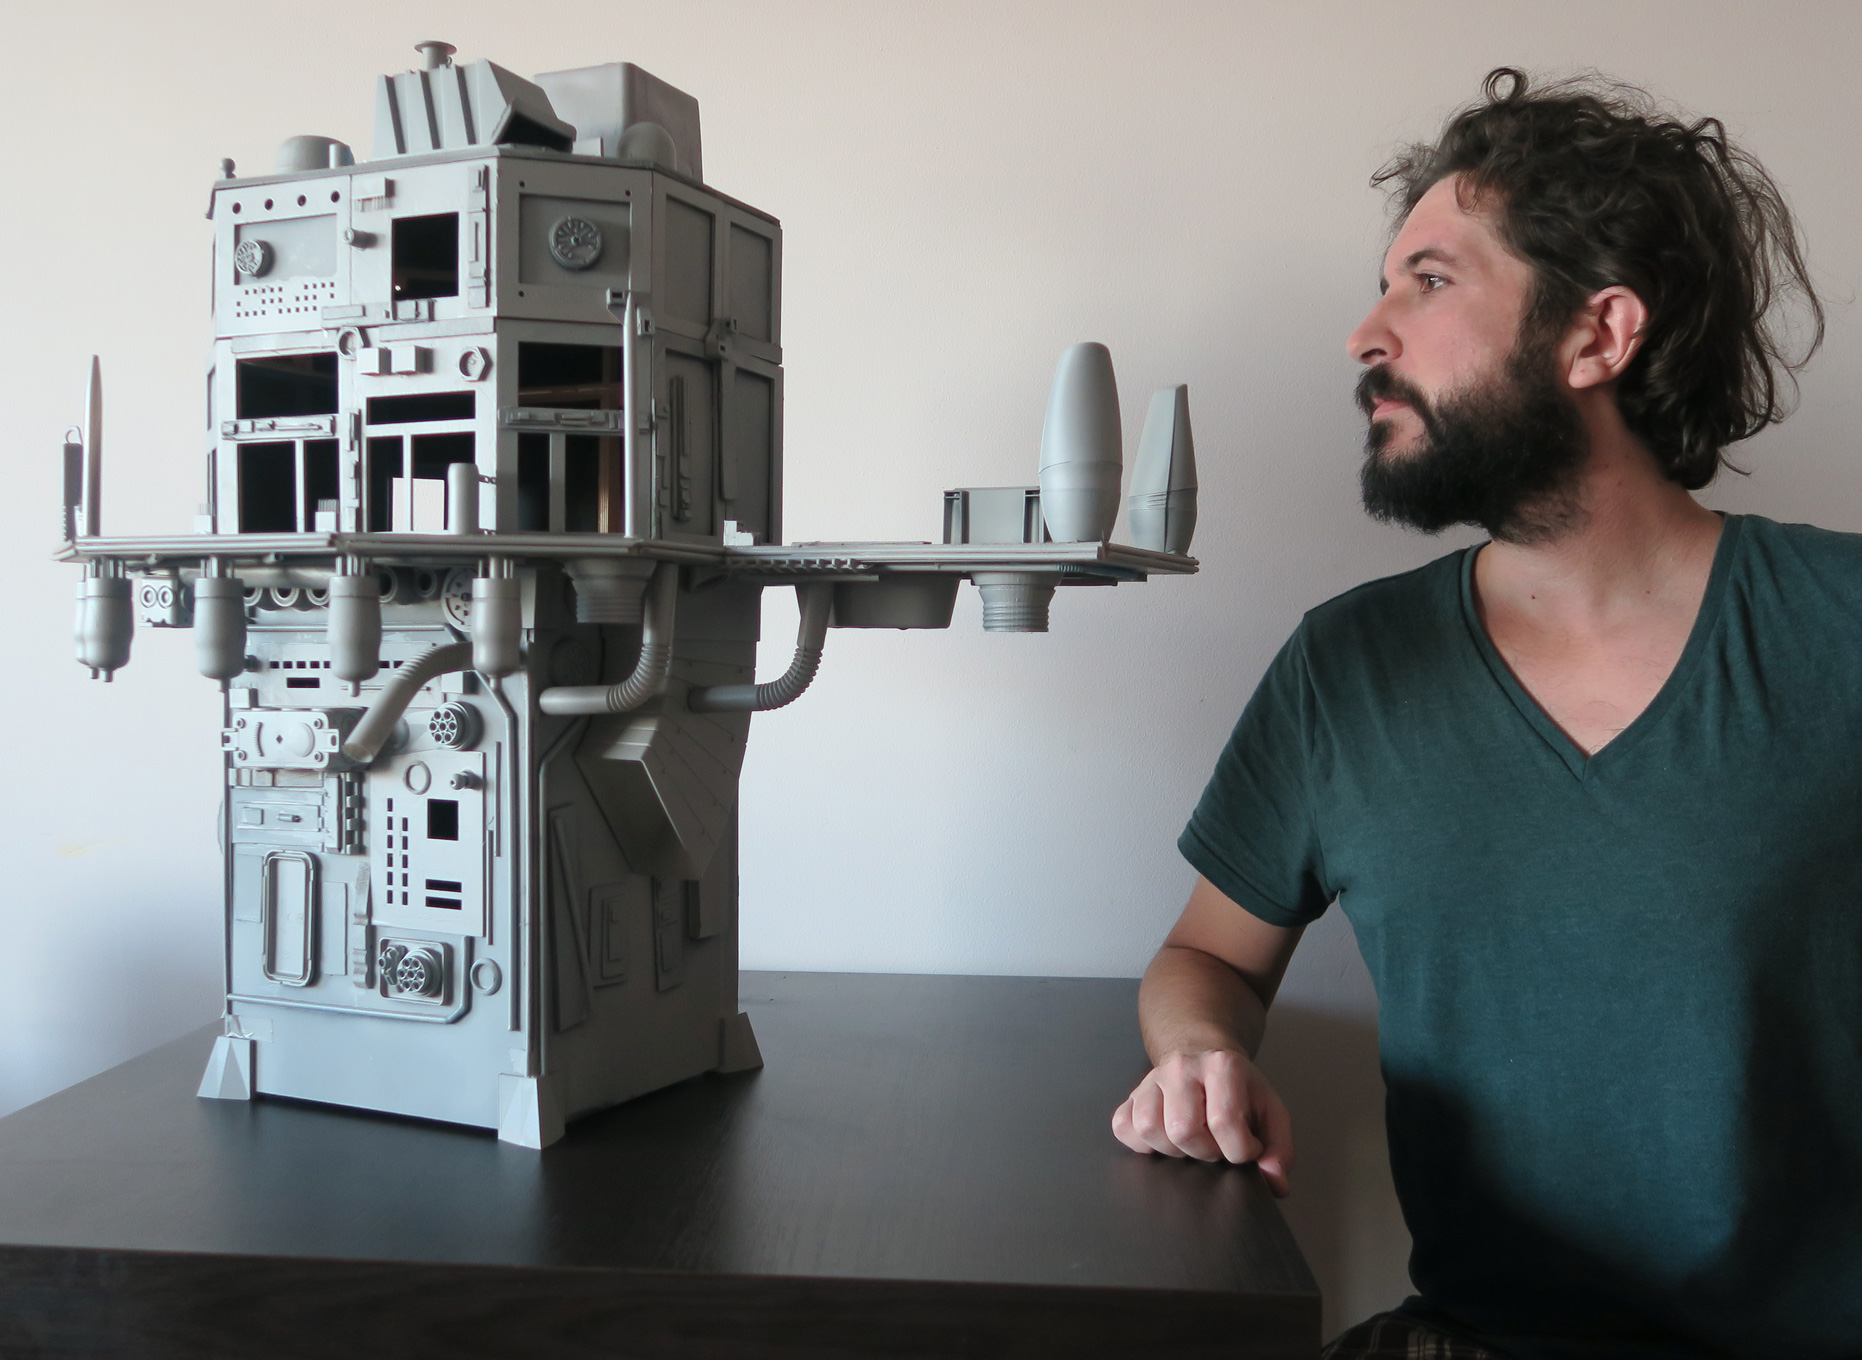 Nicola poses with his 3D printed city structure. Photo via Nicola Piosevan.